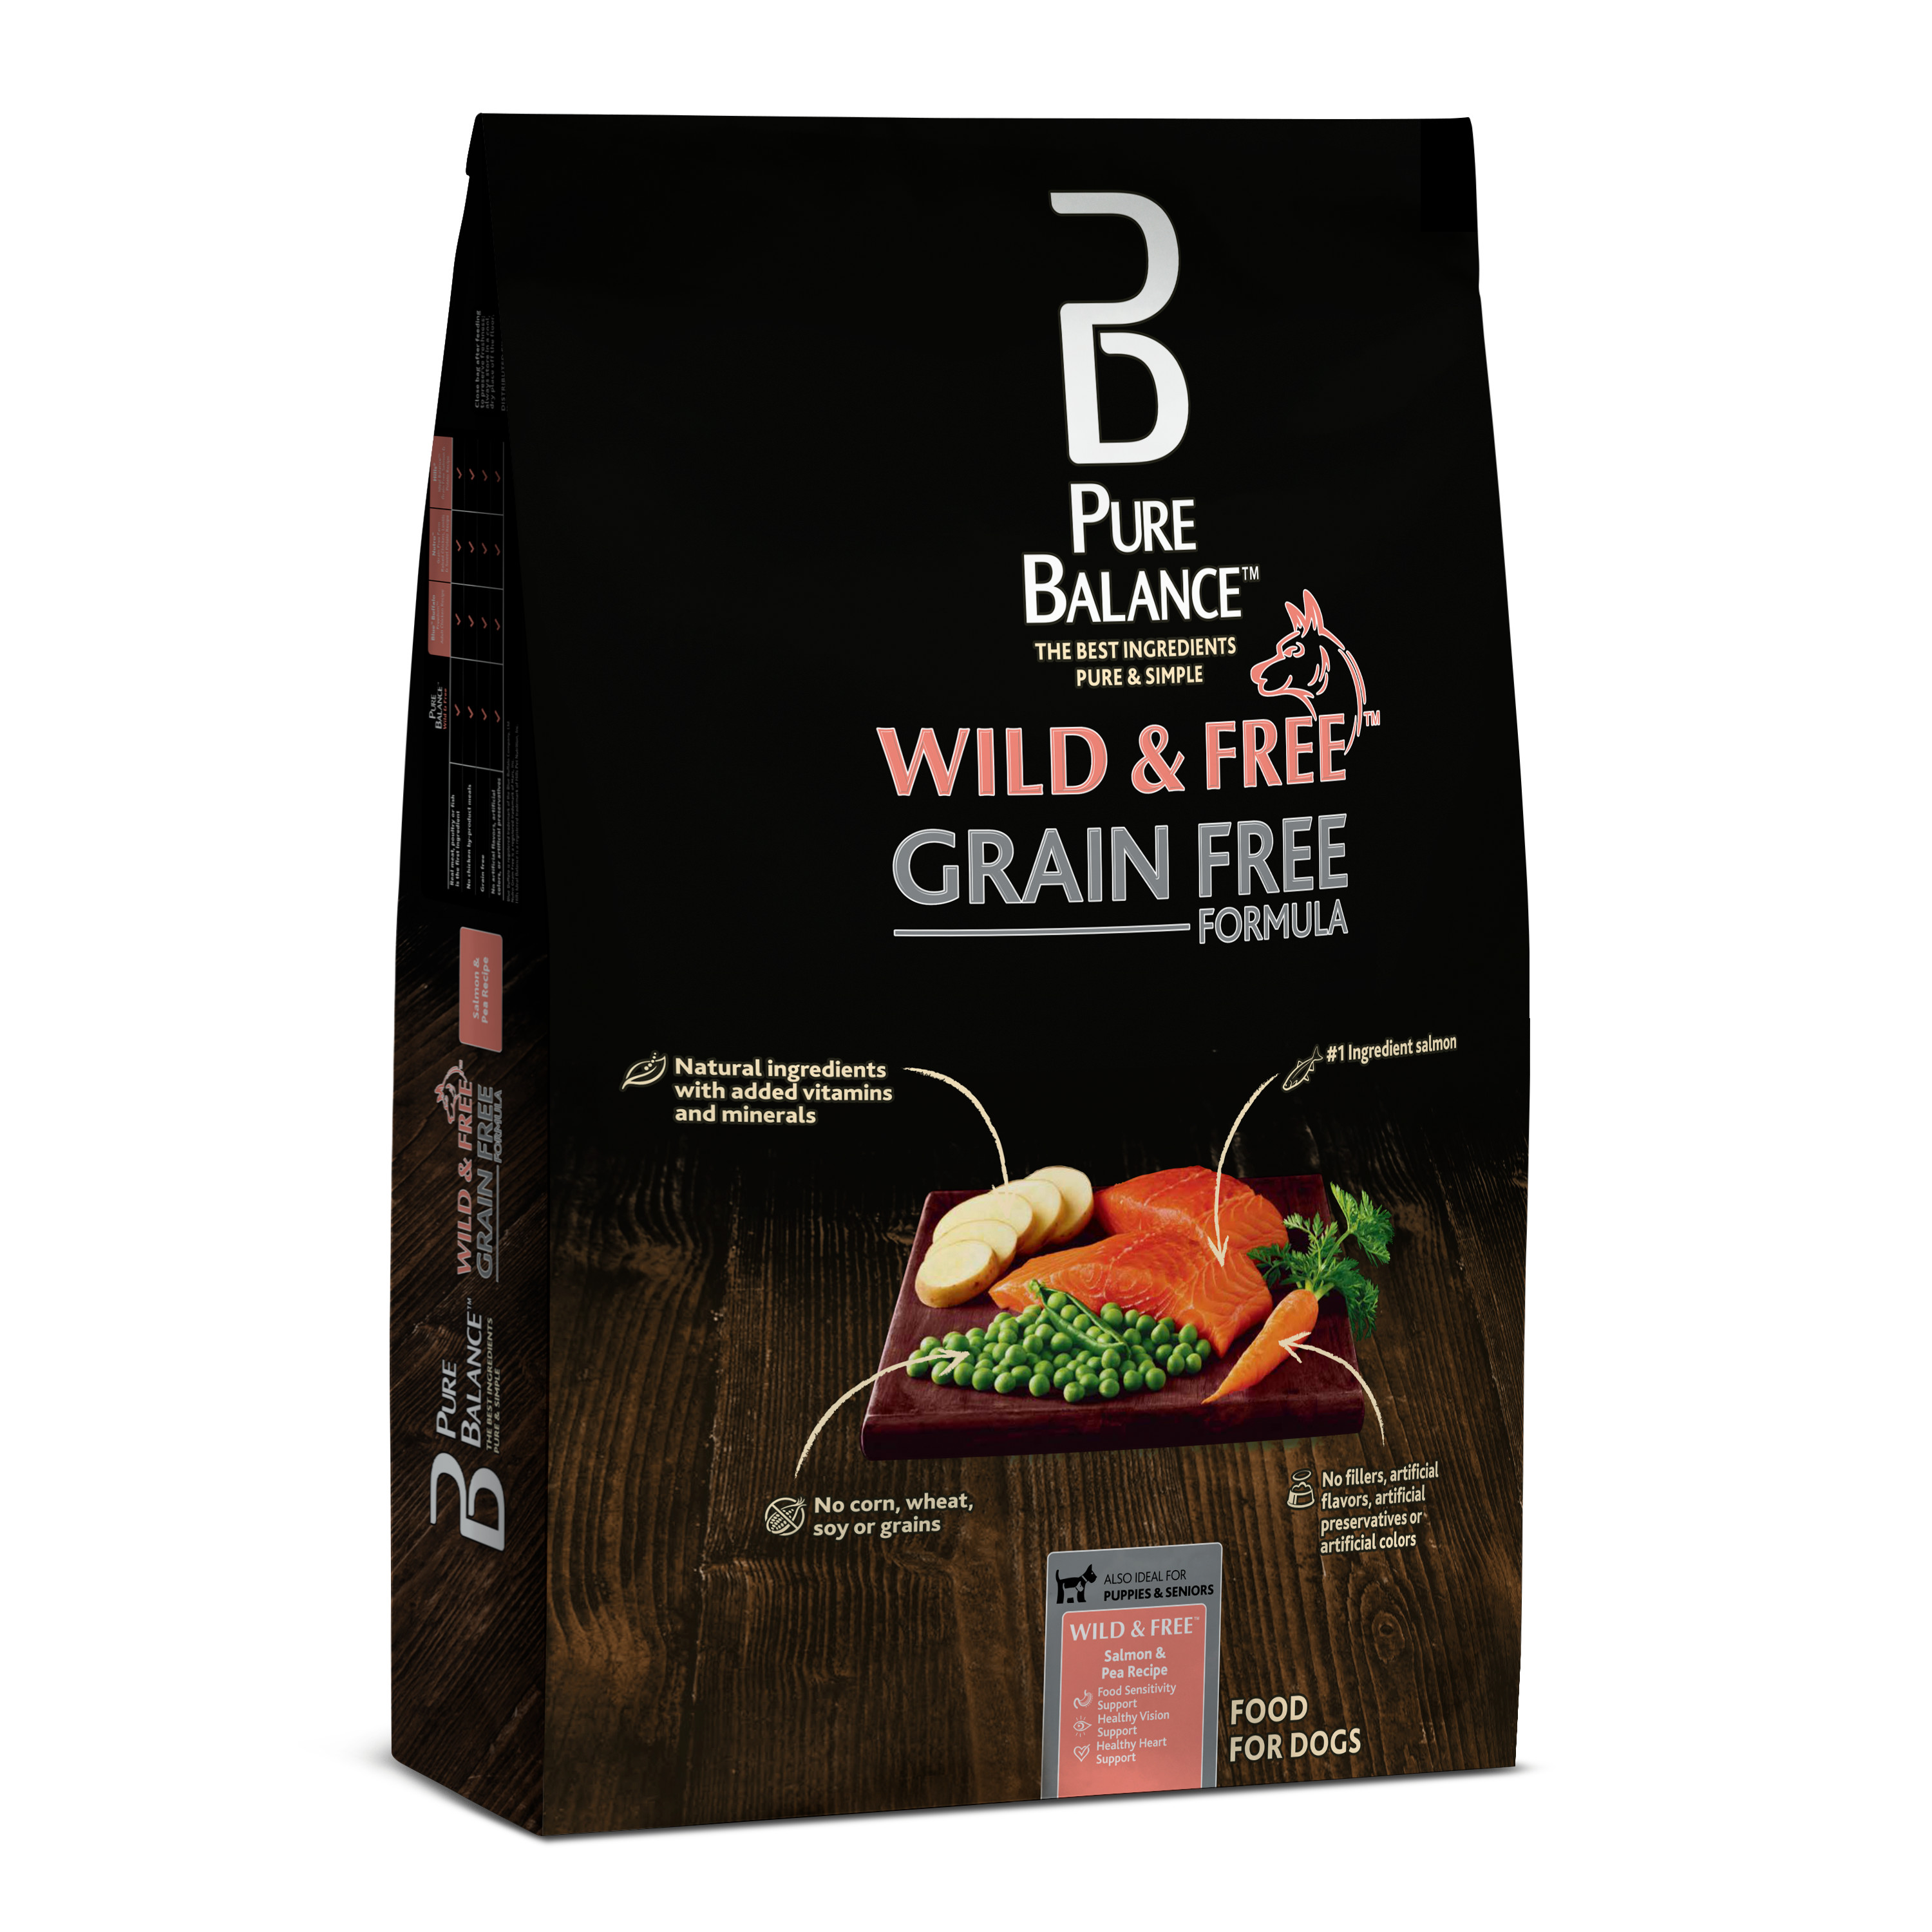 Pure Balance Wild & Free Grain-Free Salmon & Pea Recipe Dry Dog Food, 24 lb